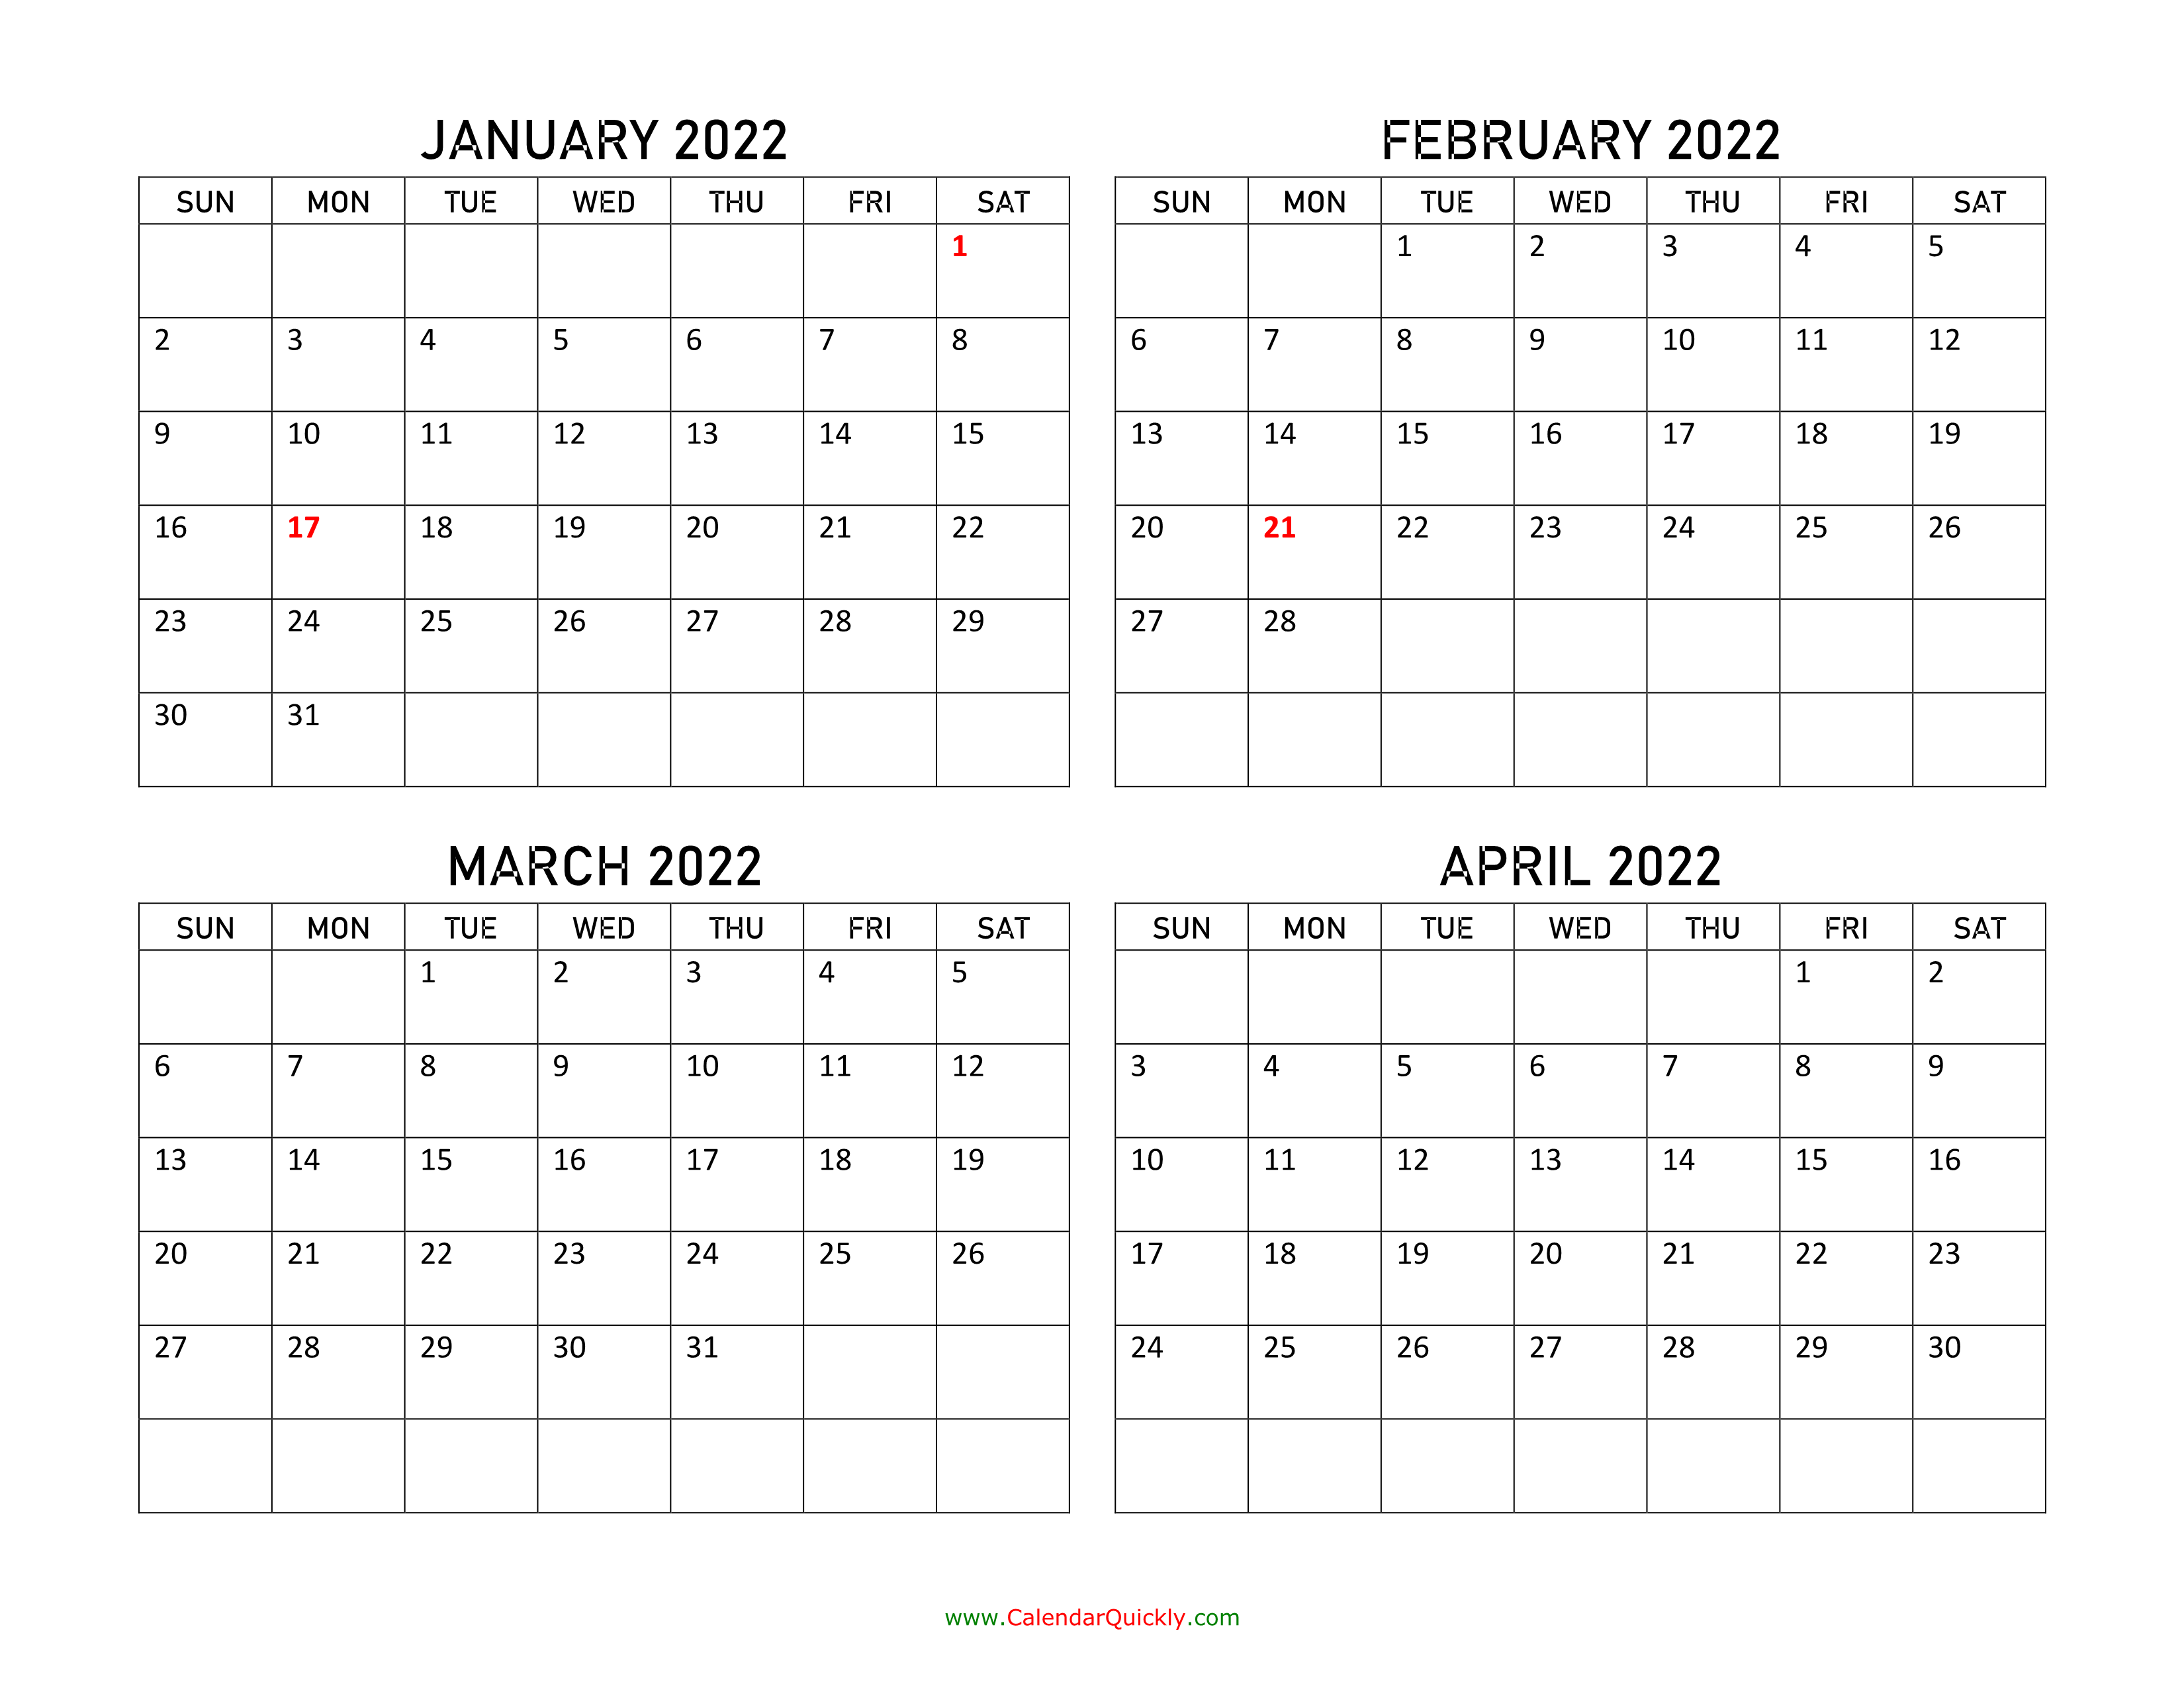 Four Months 2022 Calendar | Calendar Quickly Pertaining To Caladar For The Mont Of March 2022